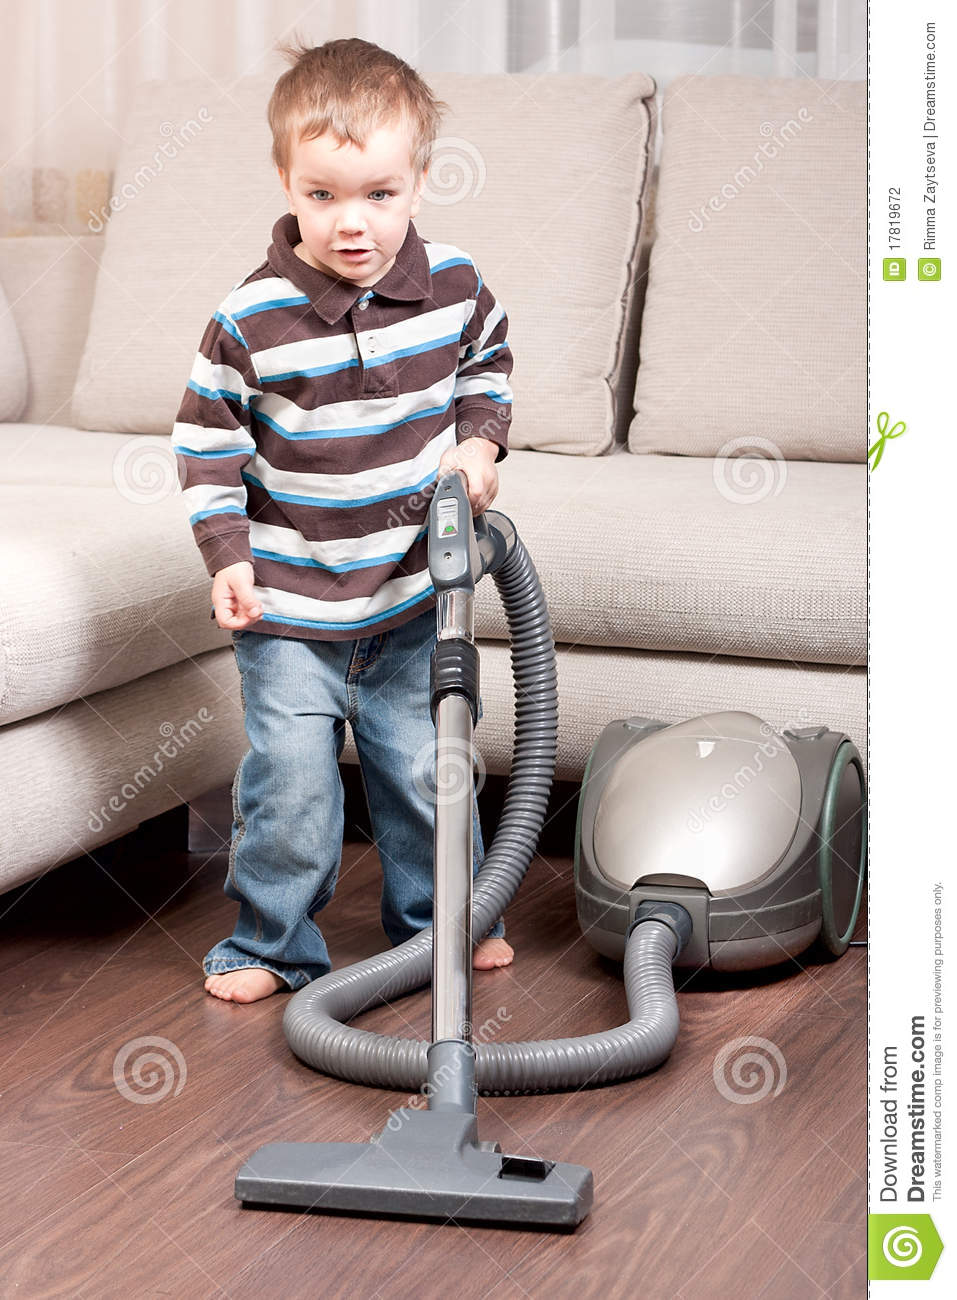 sofa cleaner living room design small boy with vacuum stock photography - image ...